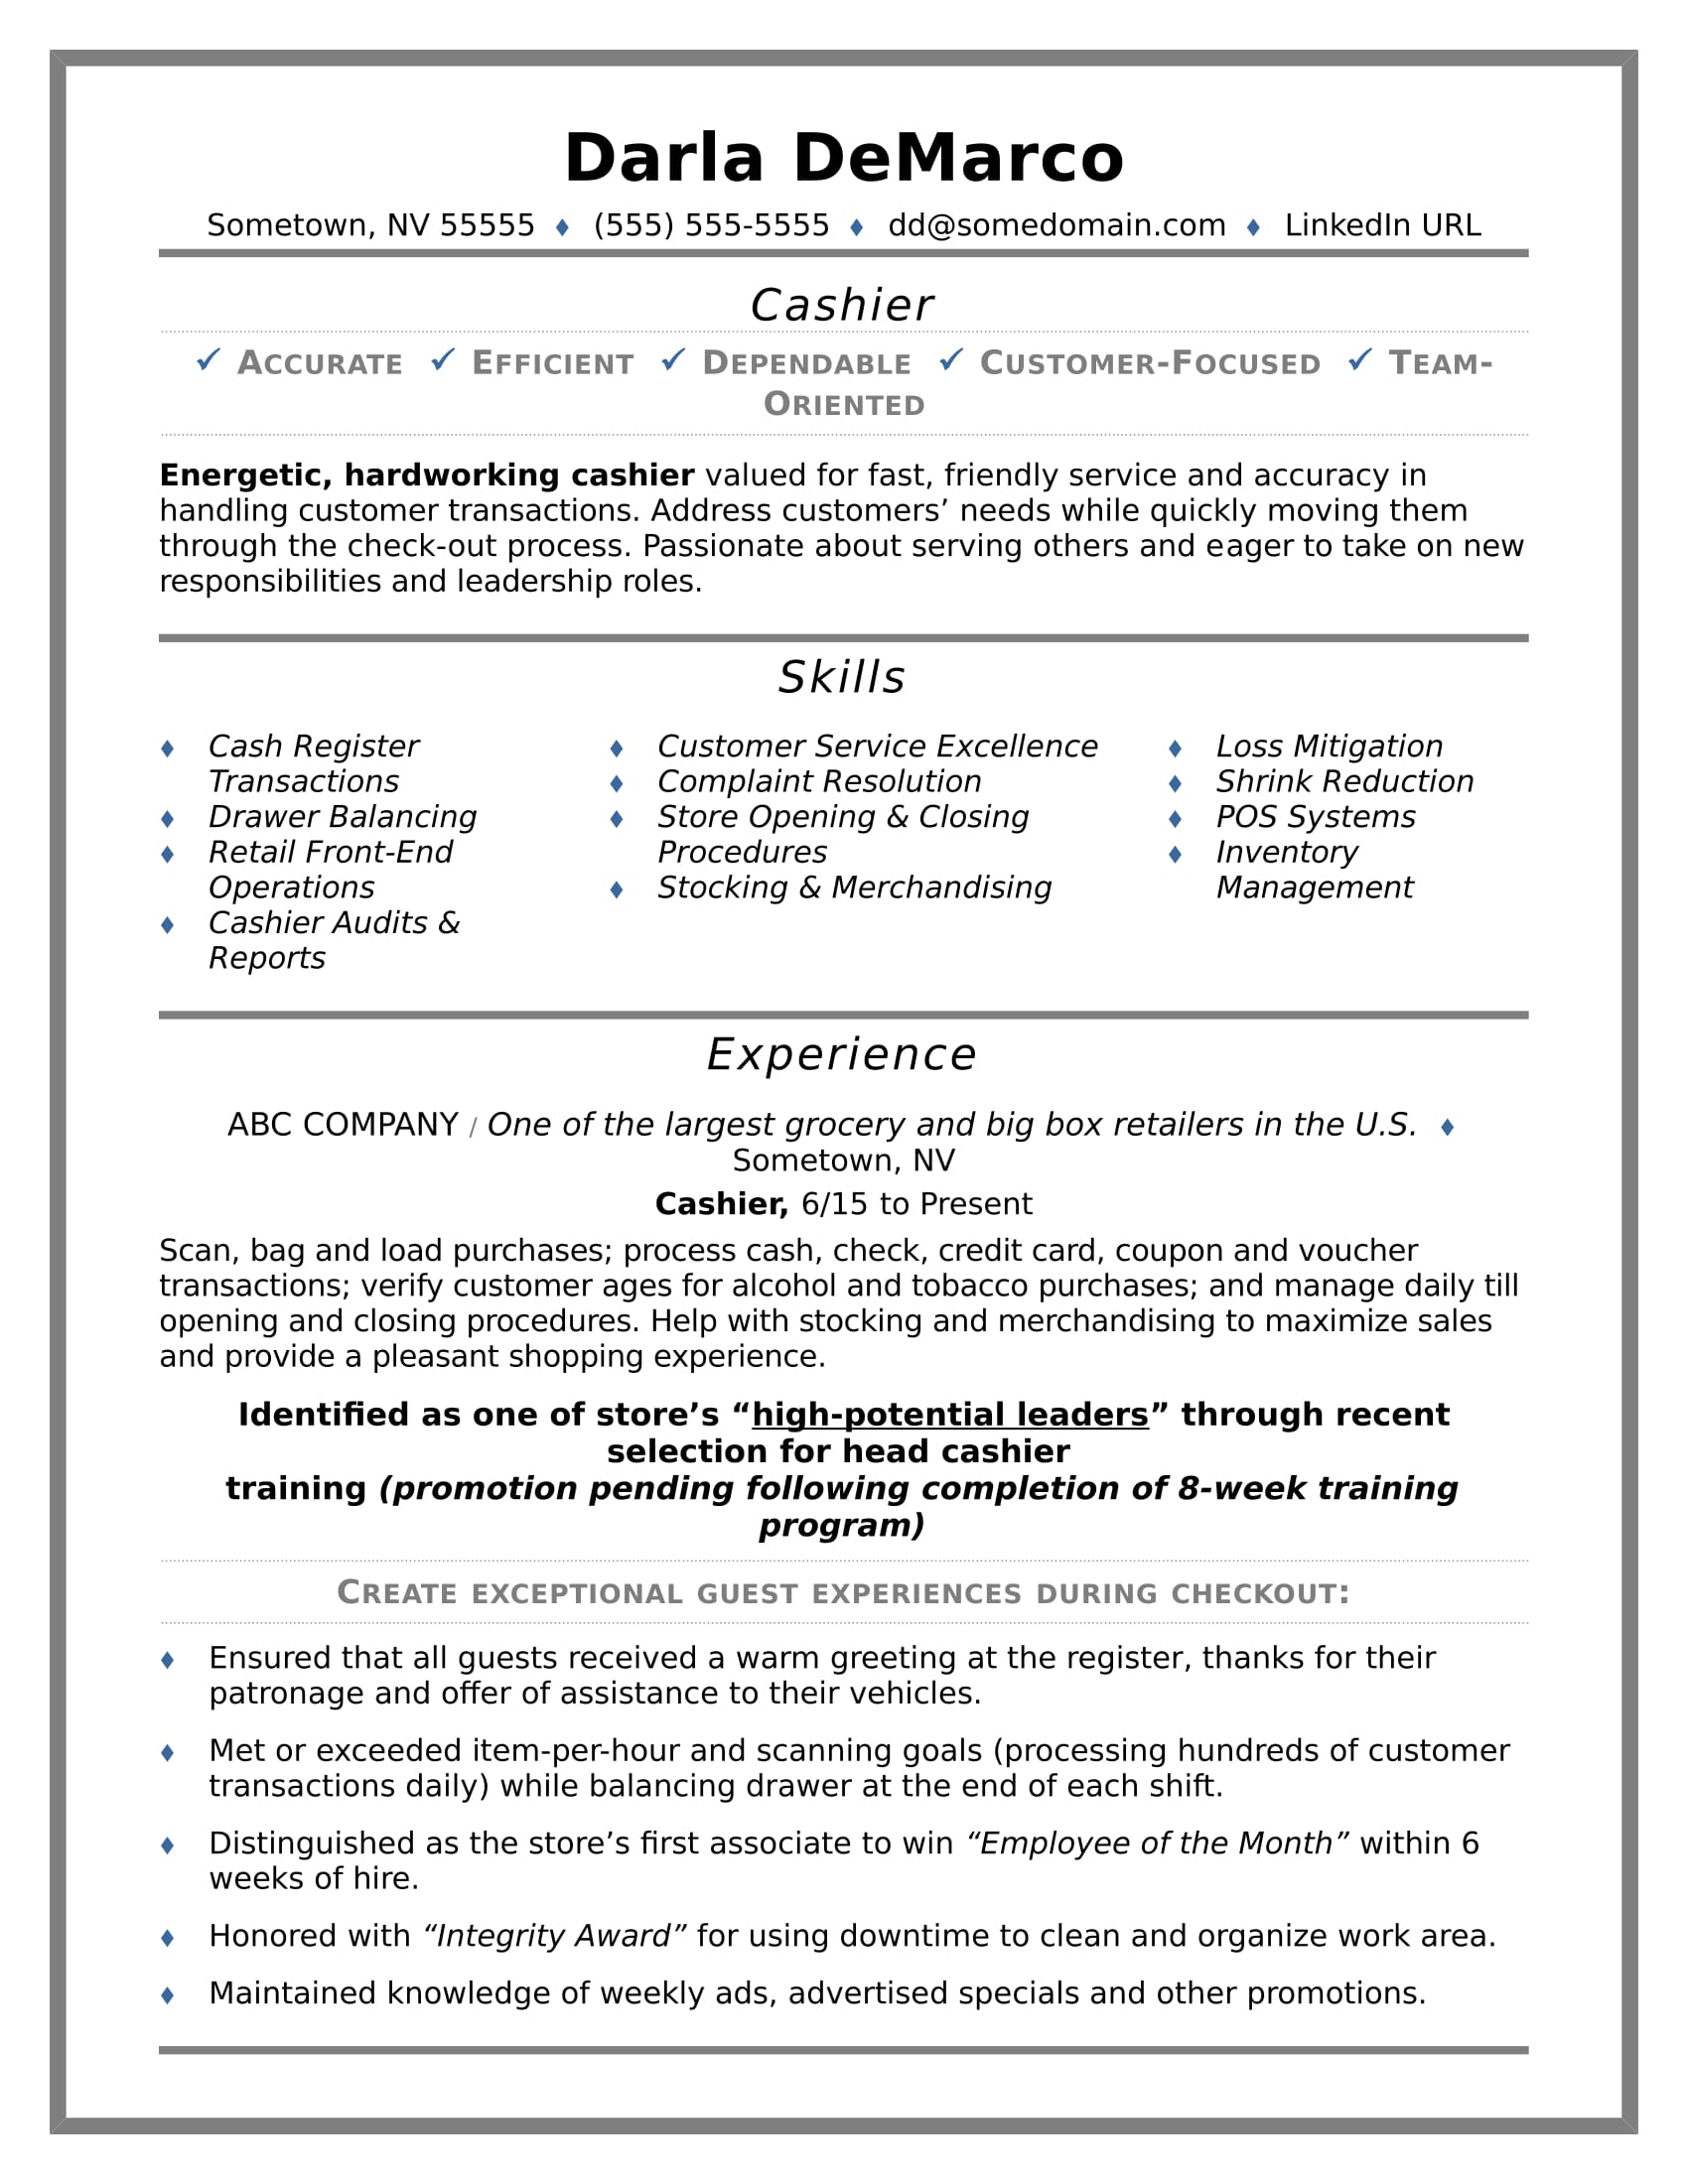 System Administrator Resume Sample India Cashier Resume Sample Monster